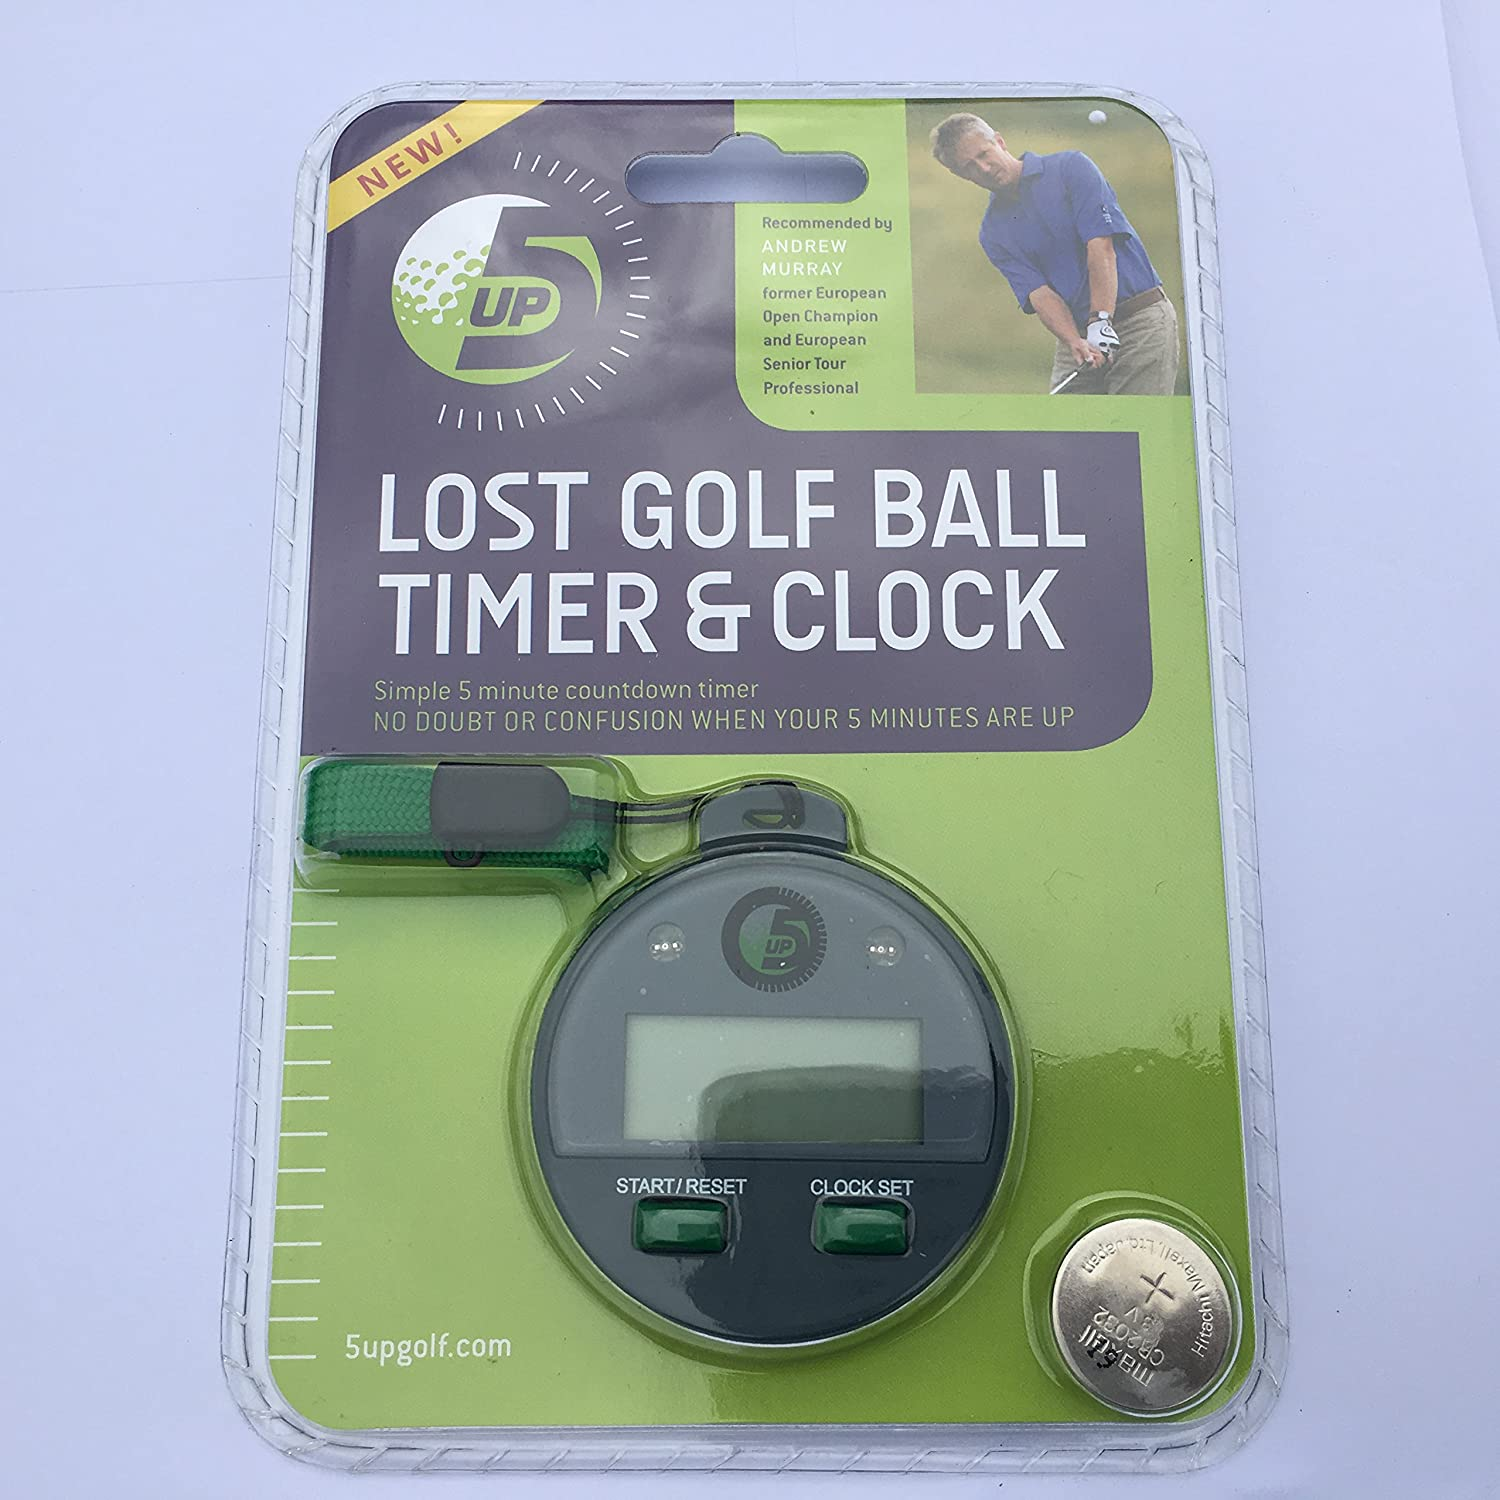 5UP - Lost Golf Ball 5 Minute Countdown Timer, Stay Within The Rules, After  4 mins 1 Beep & Amber Light, After 5 Mins 5 Bleeps & Red Light